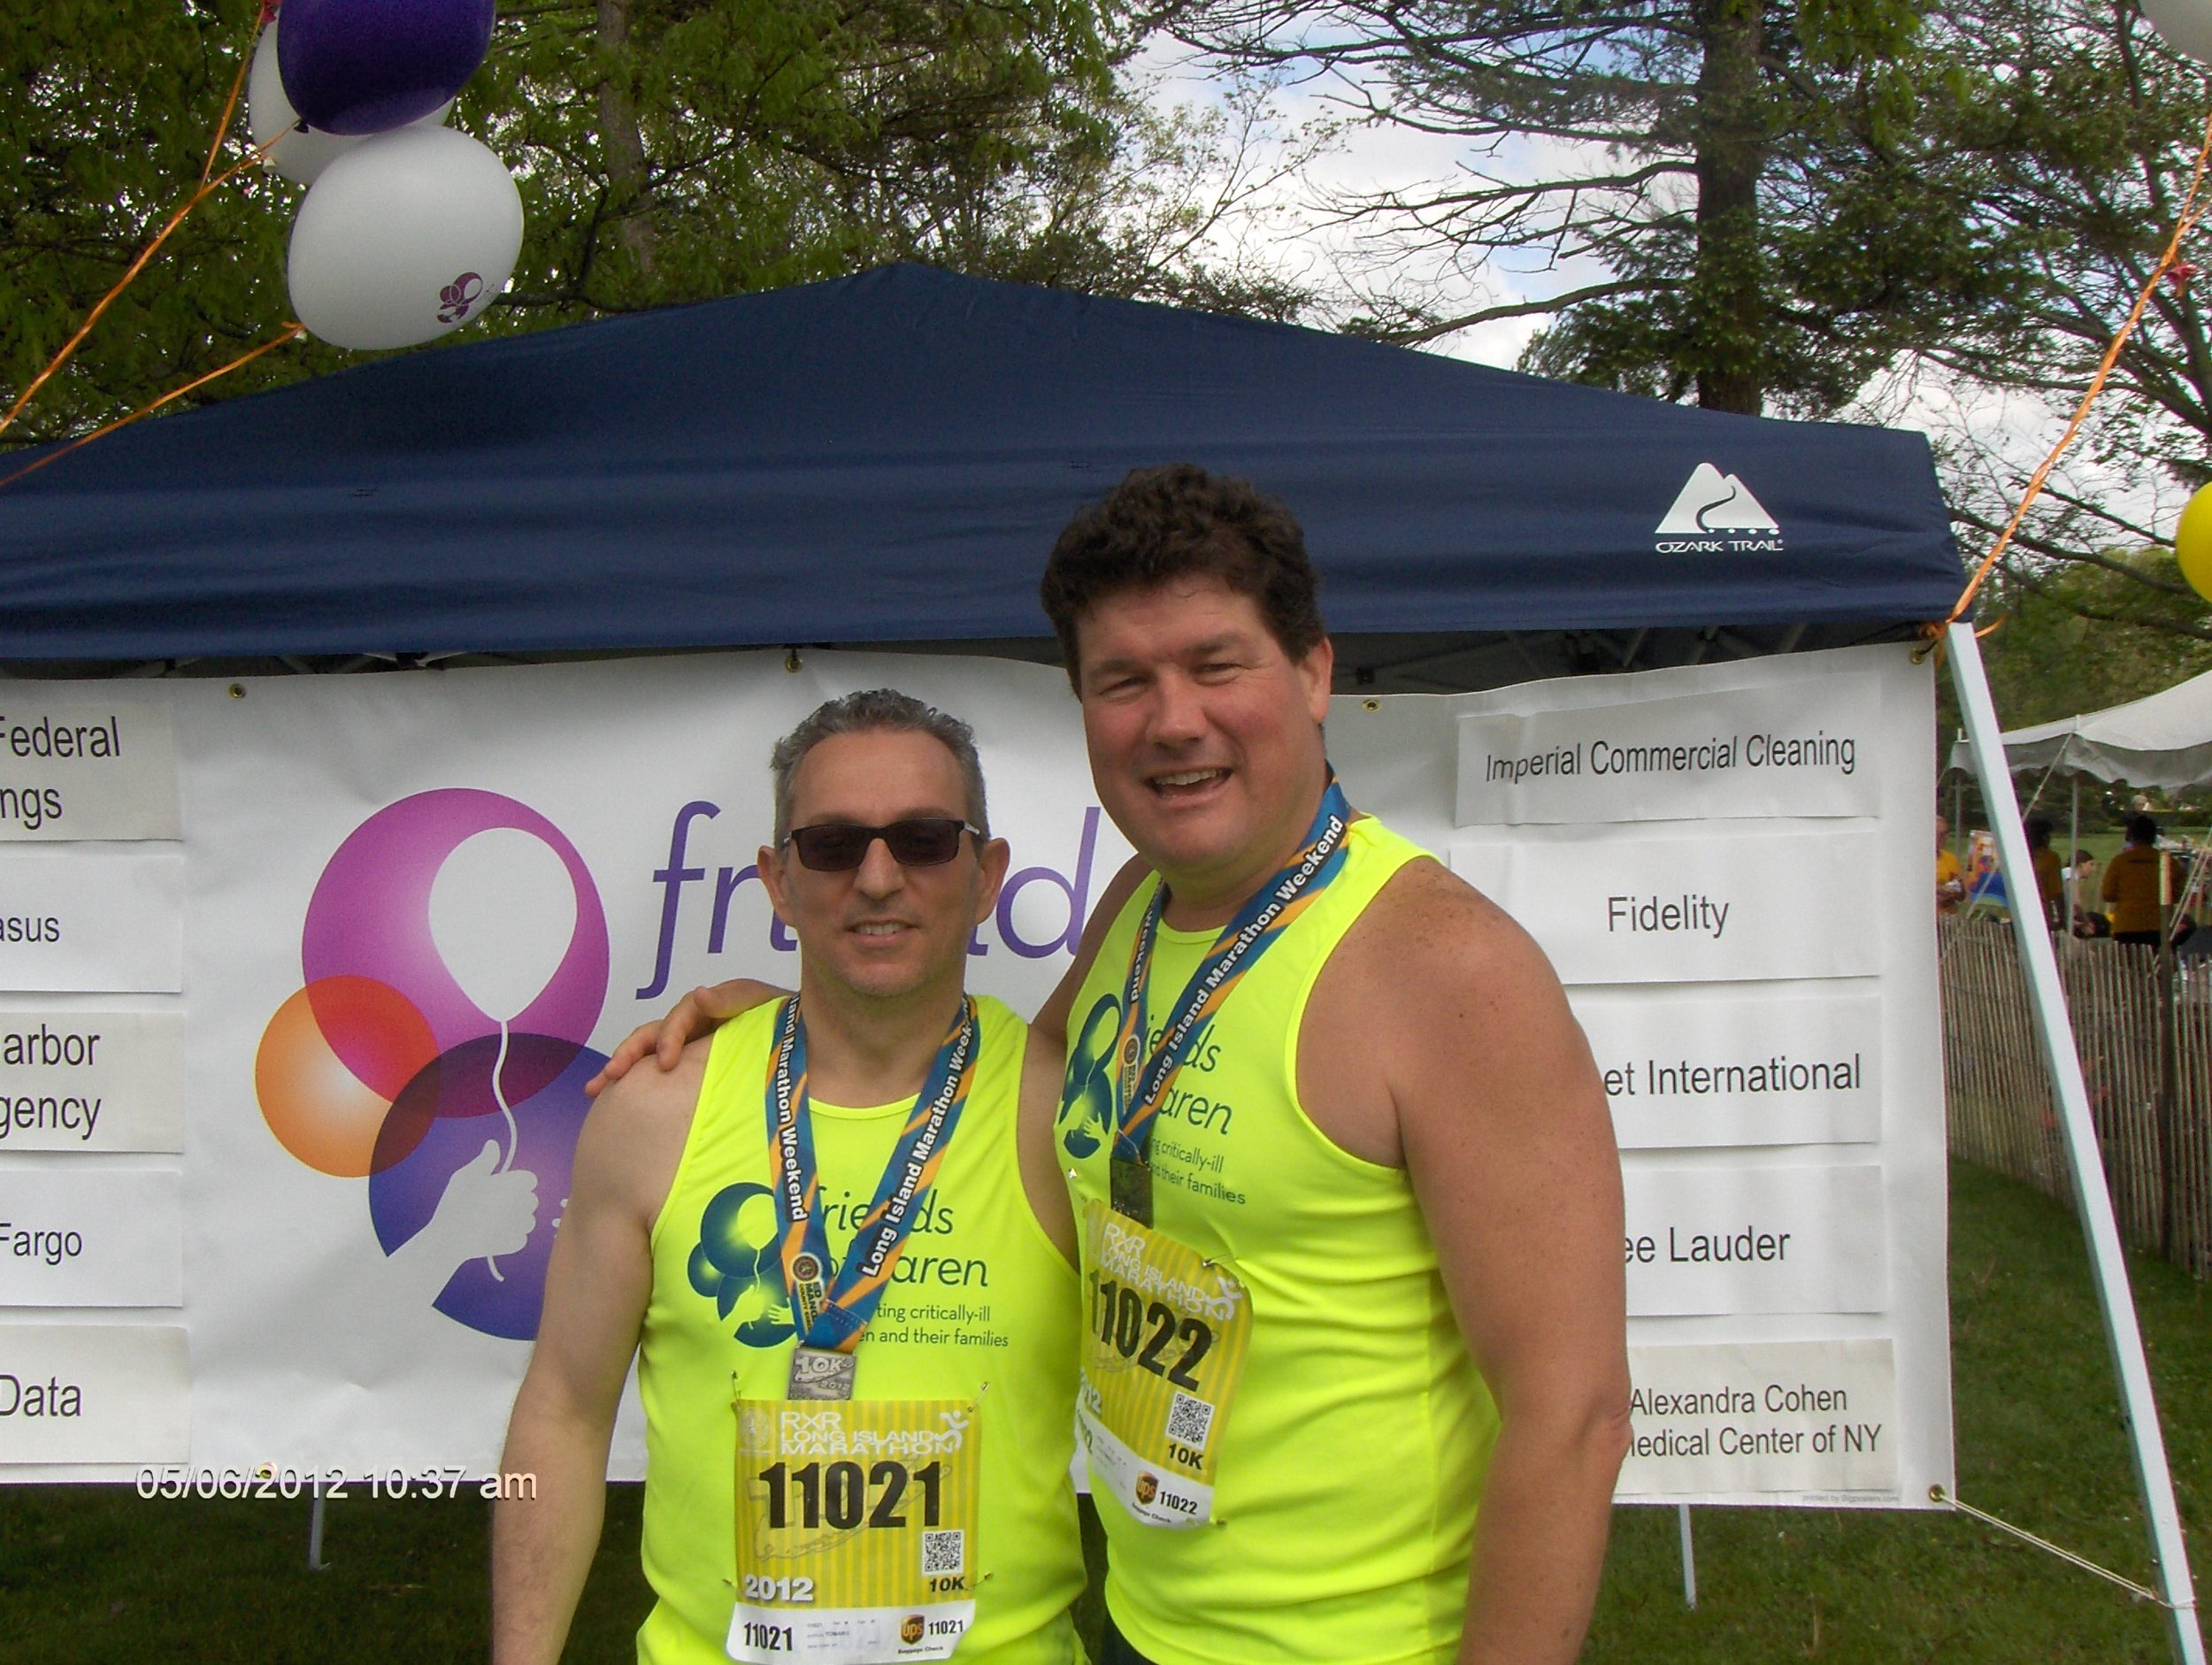 Steven Connolly, right, has been participating in the Friends of Karen annual walk-run for eight years, raising approximately $16,000 for the organization. Pictured with him is Anthony Tomaro, a partner at Grassi and Co. accounting firm.